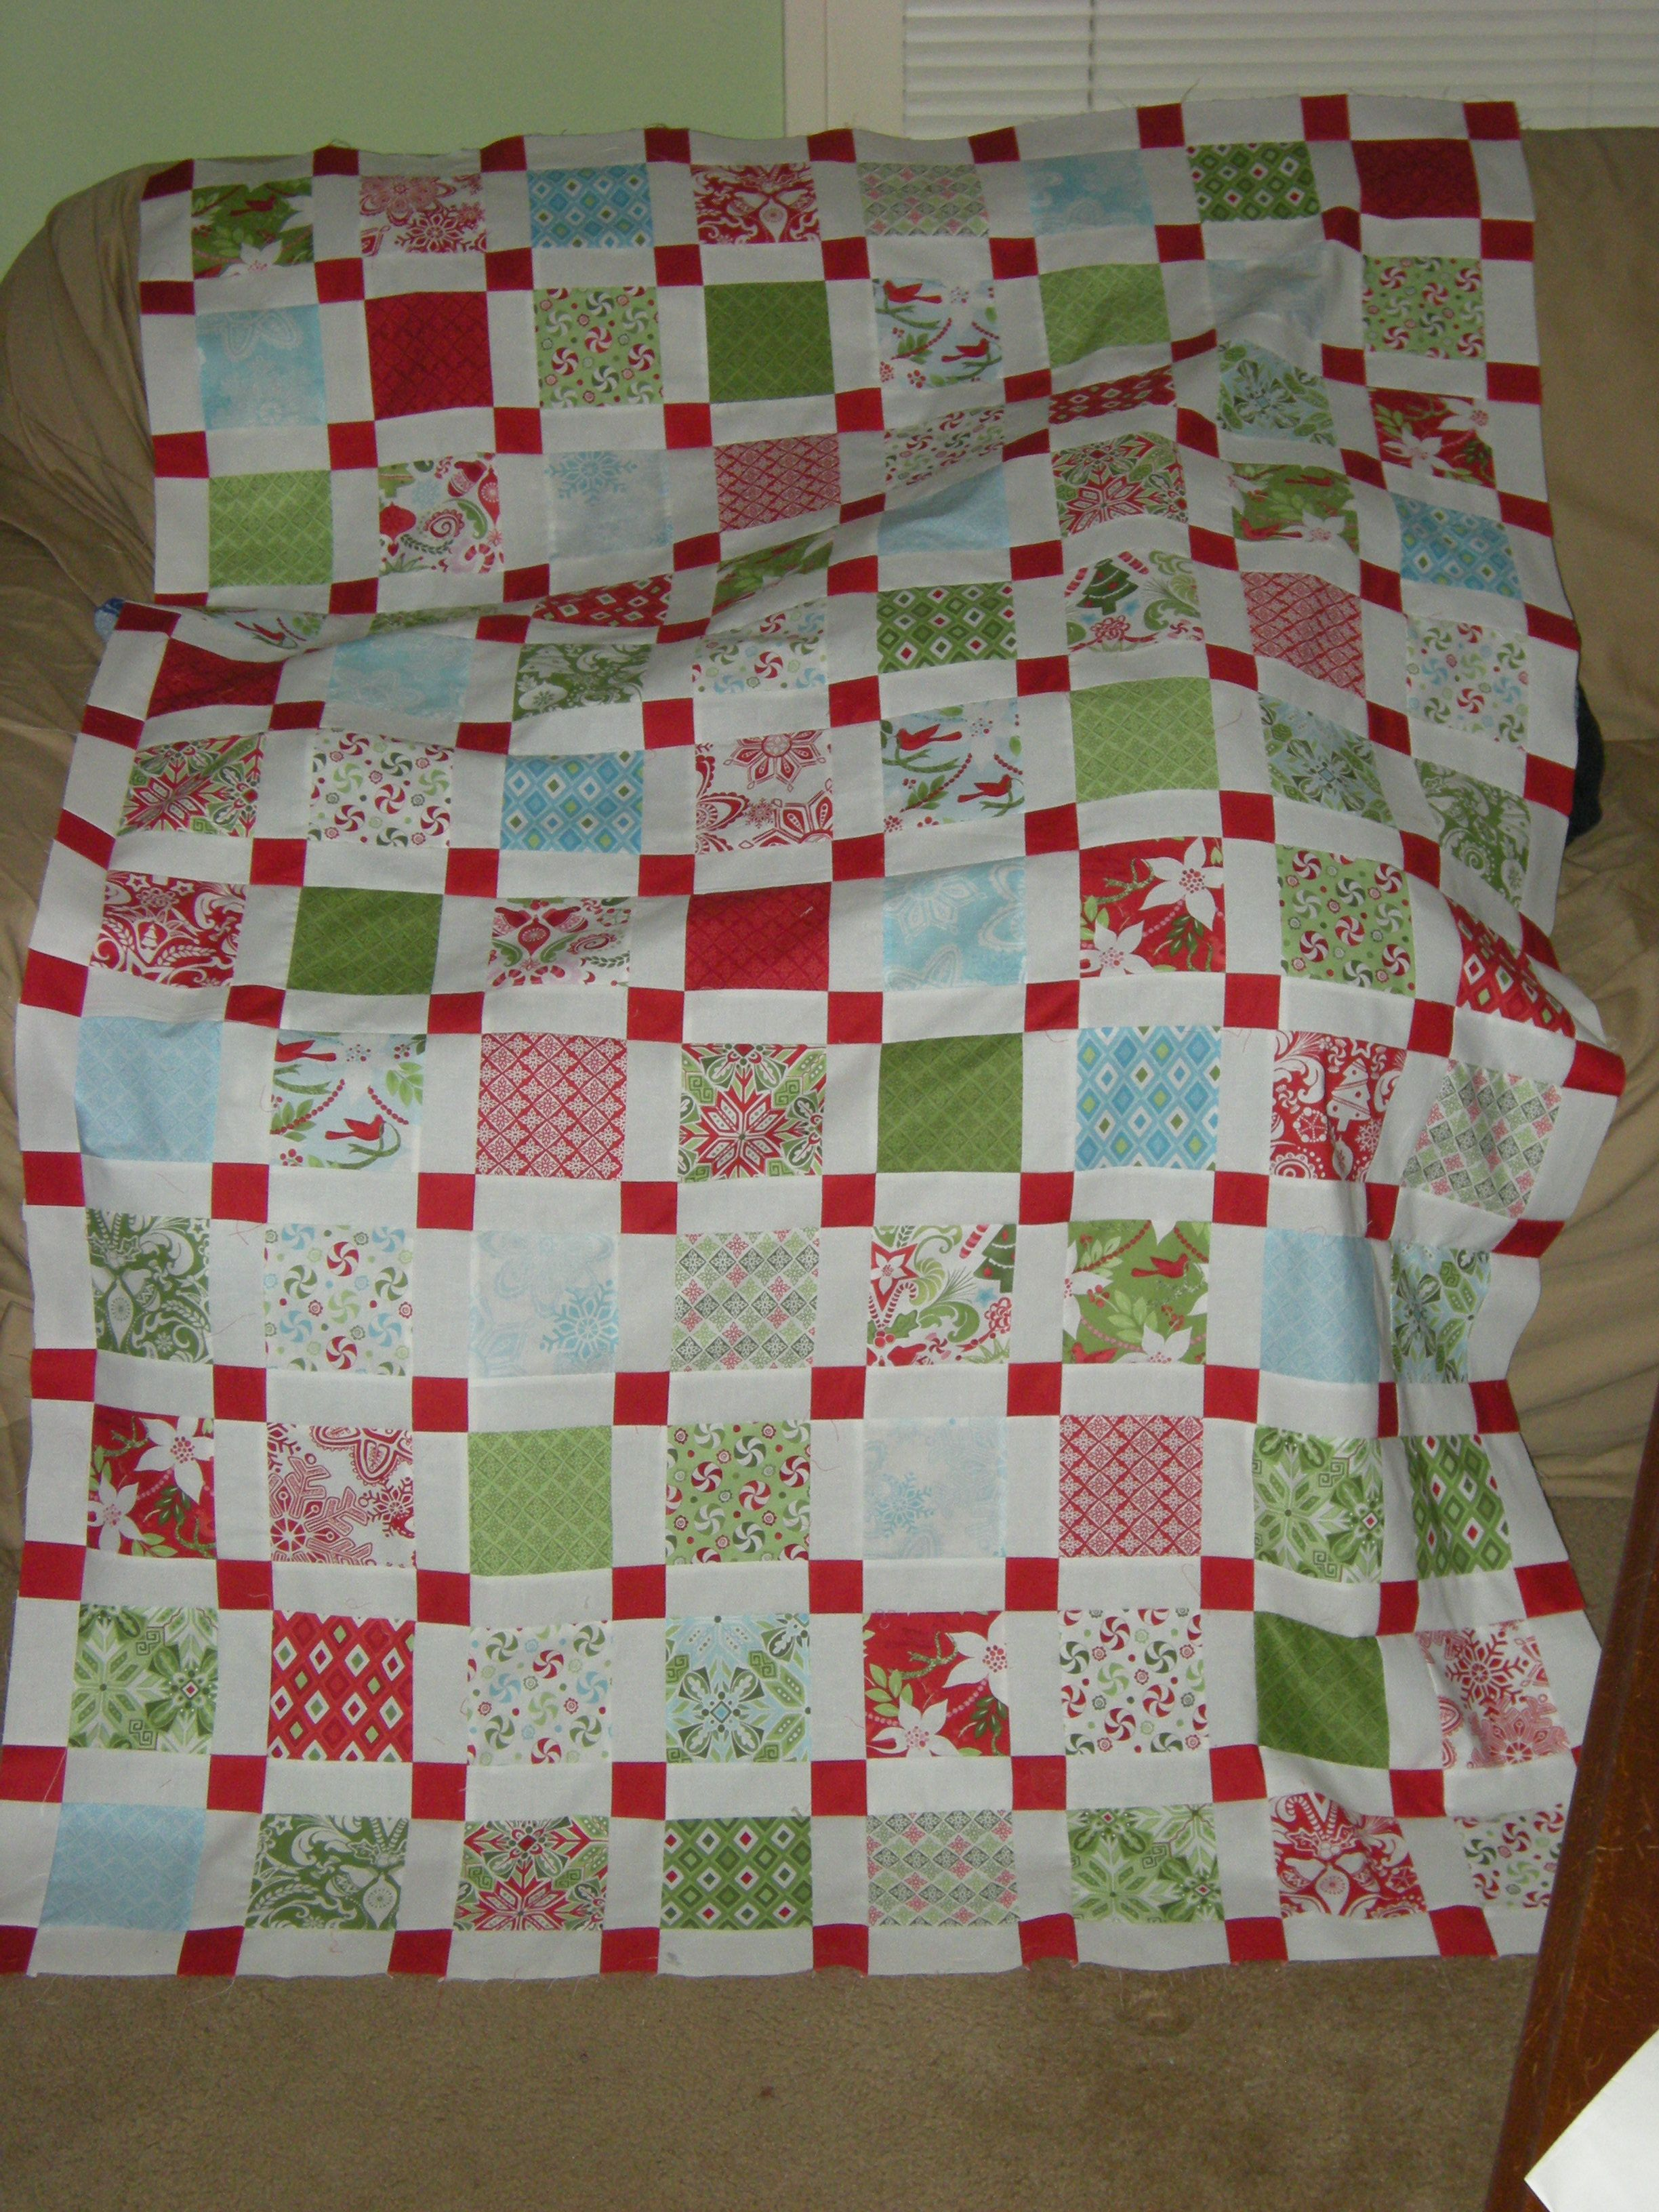 Festive Flurry quilt using Kate Spain's Flurry fabric and Amy ... : flurry quilt pattern - Adamdwight.com